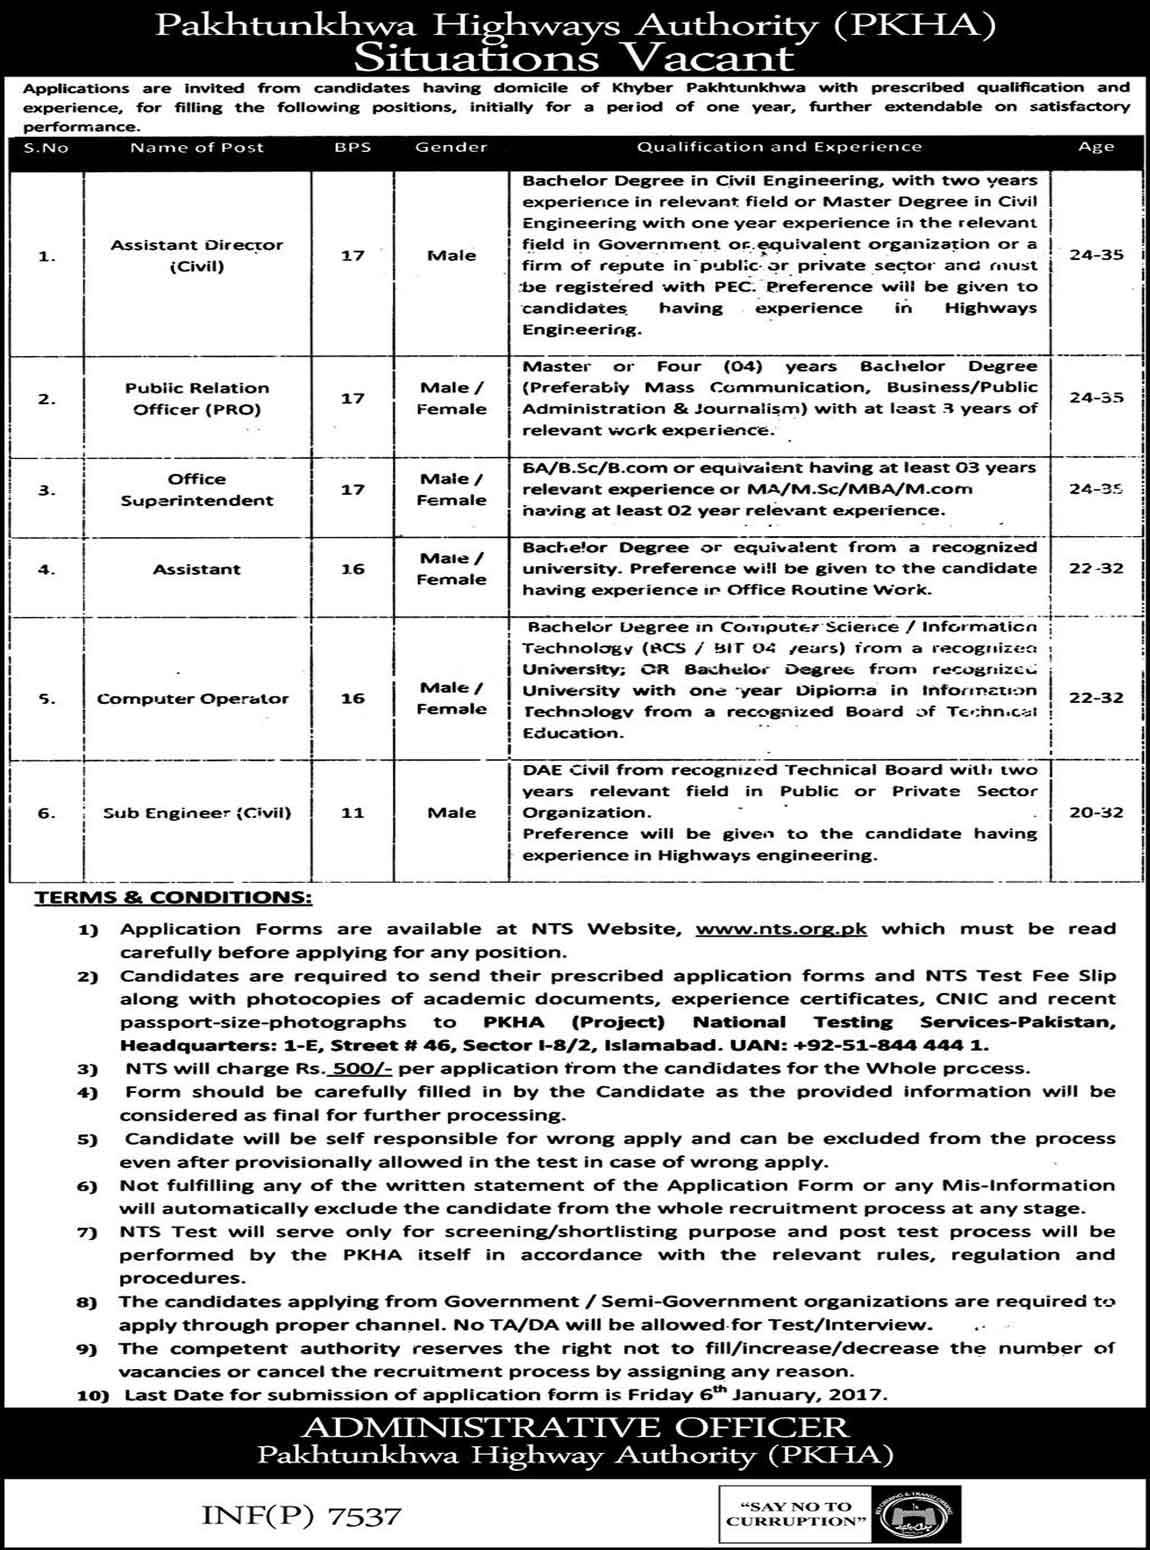 Pakhtunkhwa Highways Authority PKHA Jobs Download Application Form